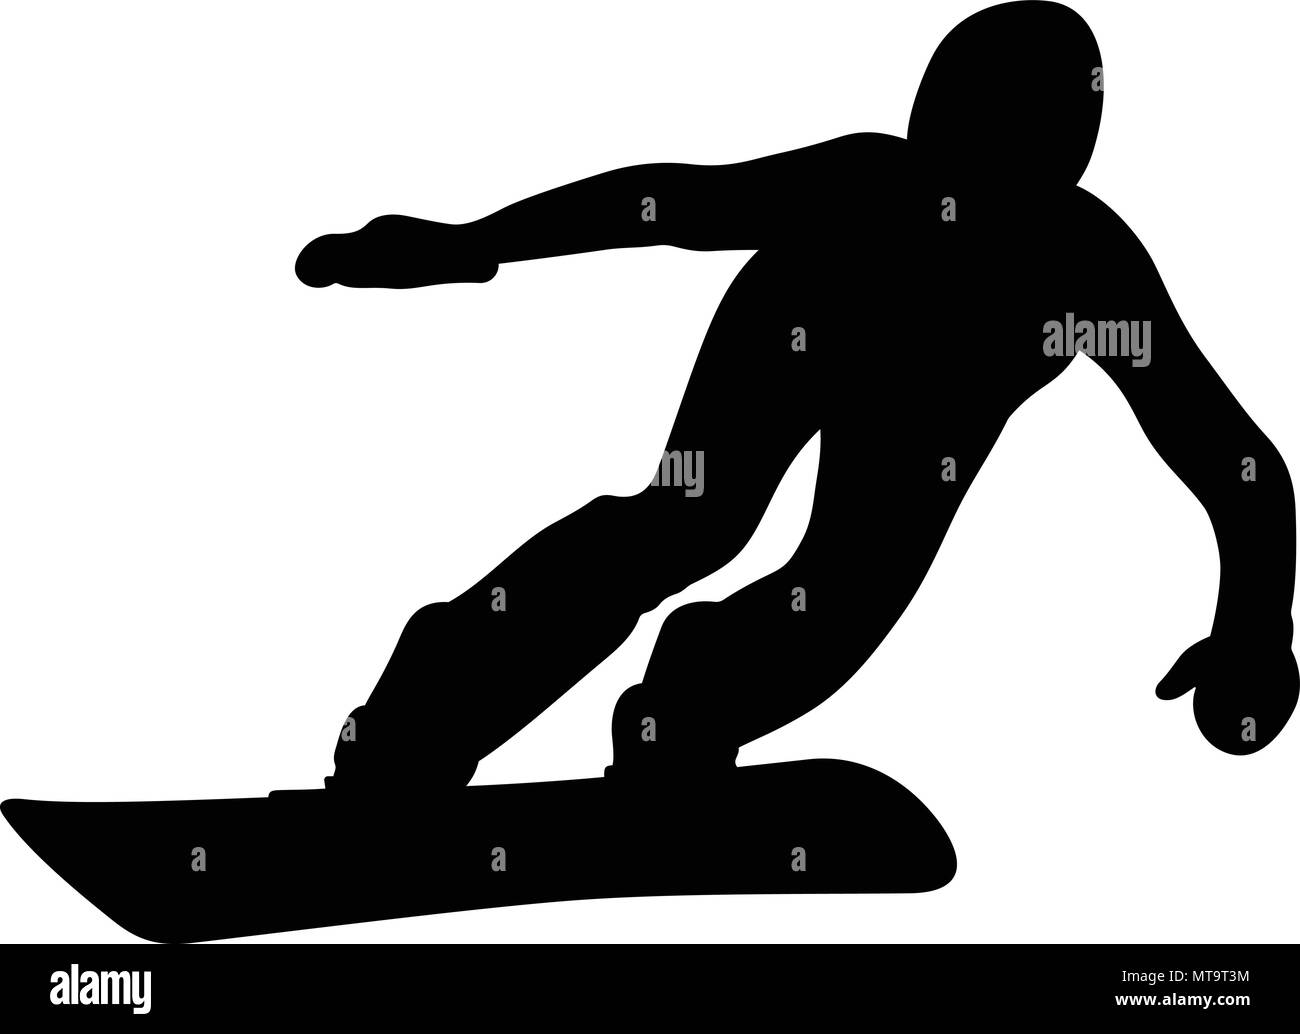 athlete snowboarder downhill snowboard competition black silhouette - Stock Image